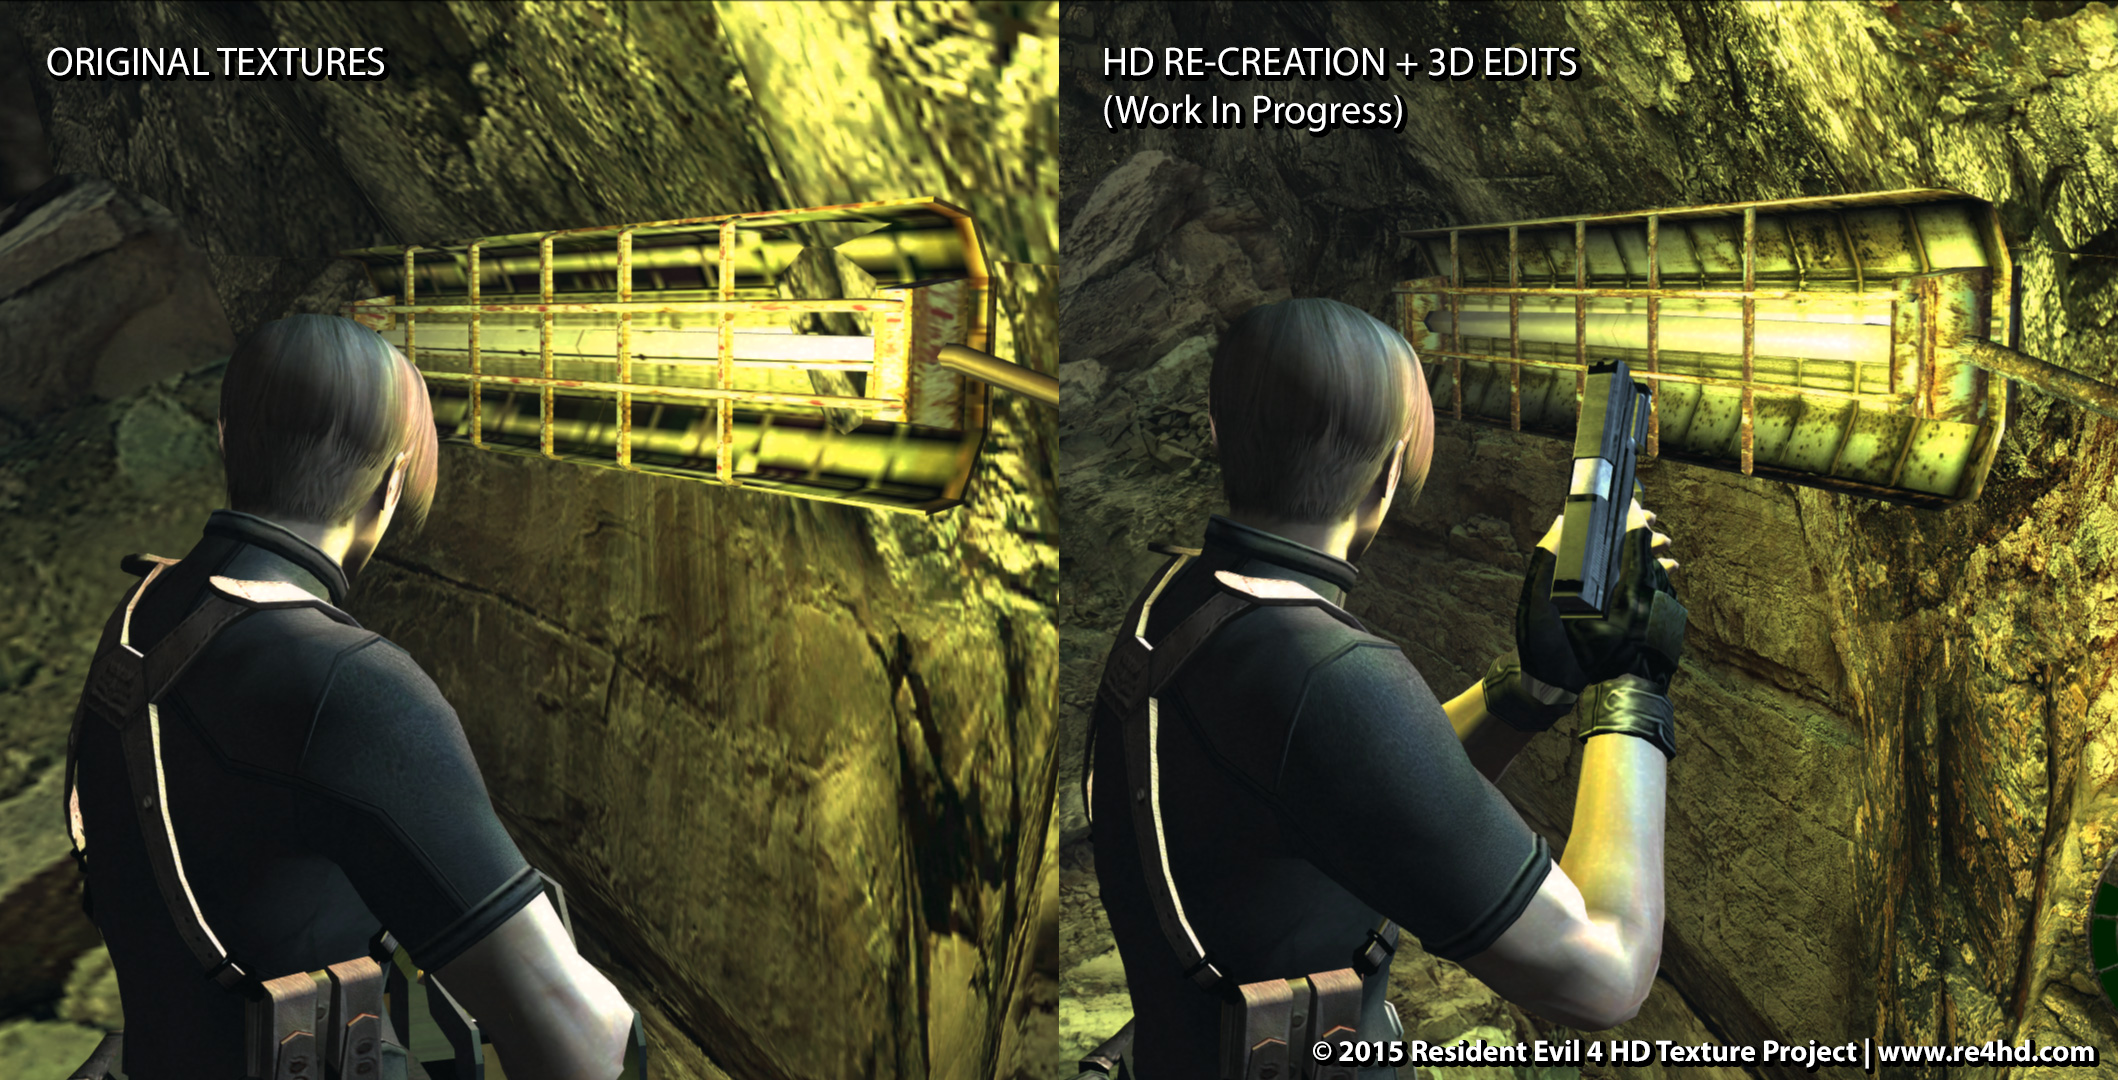 Resident Evil 4 HD Project - New Mind-blowing Comparison